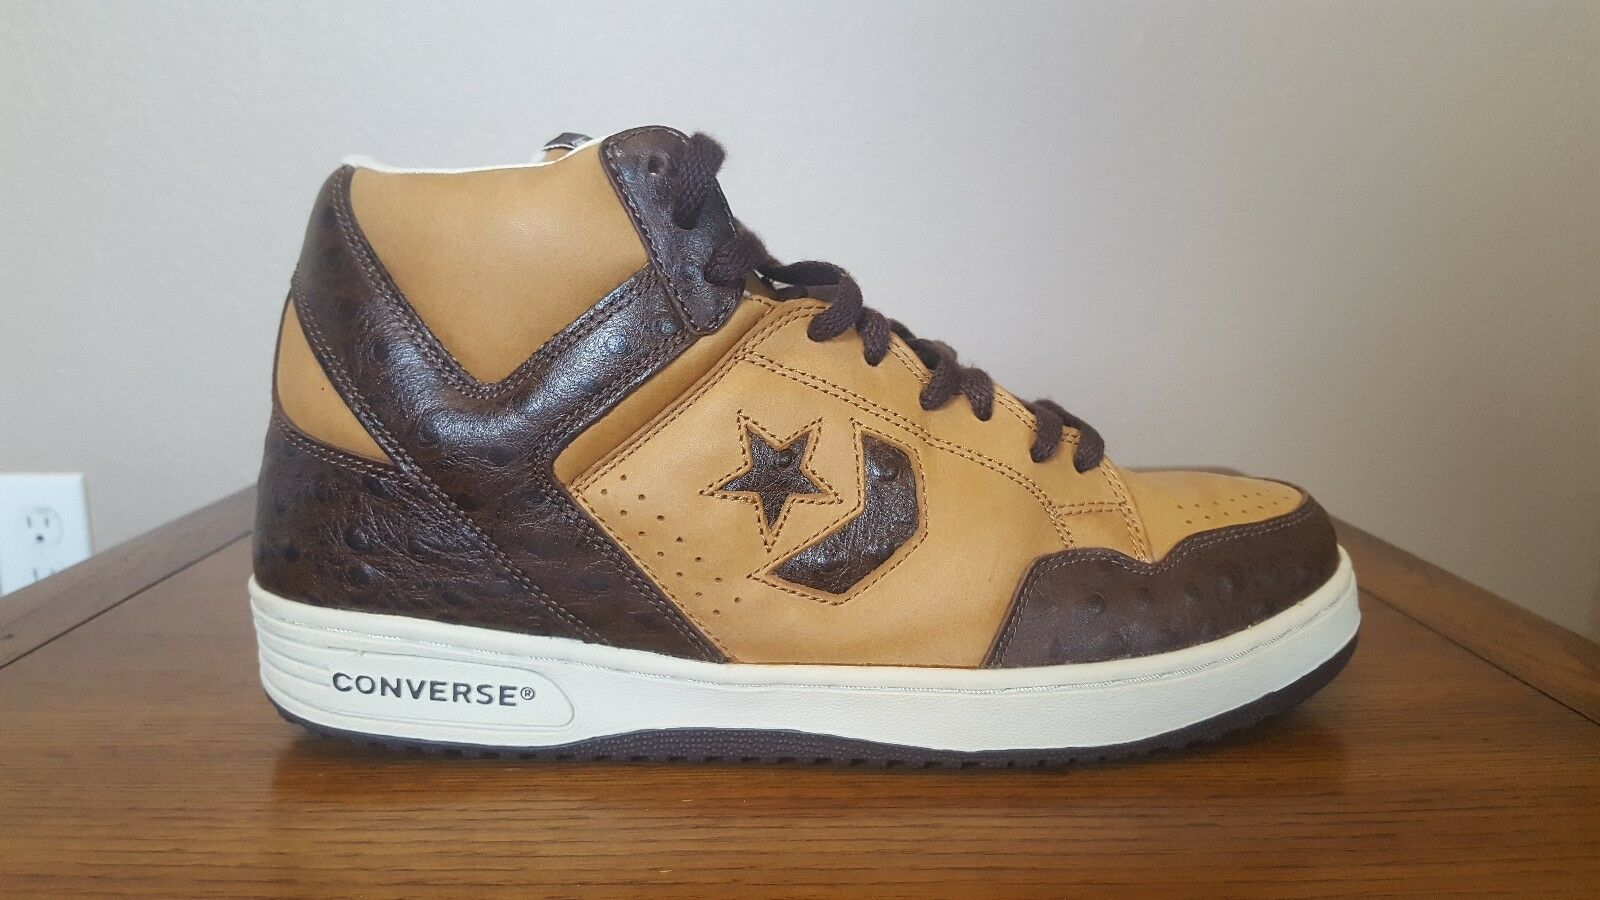 b235a6d622e1ea Converse Weapon Brown   Ostrich Basketball Shoes Size 11.5 for sale ...